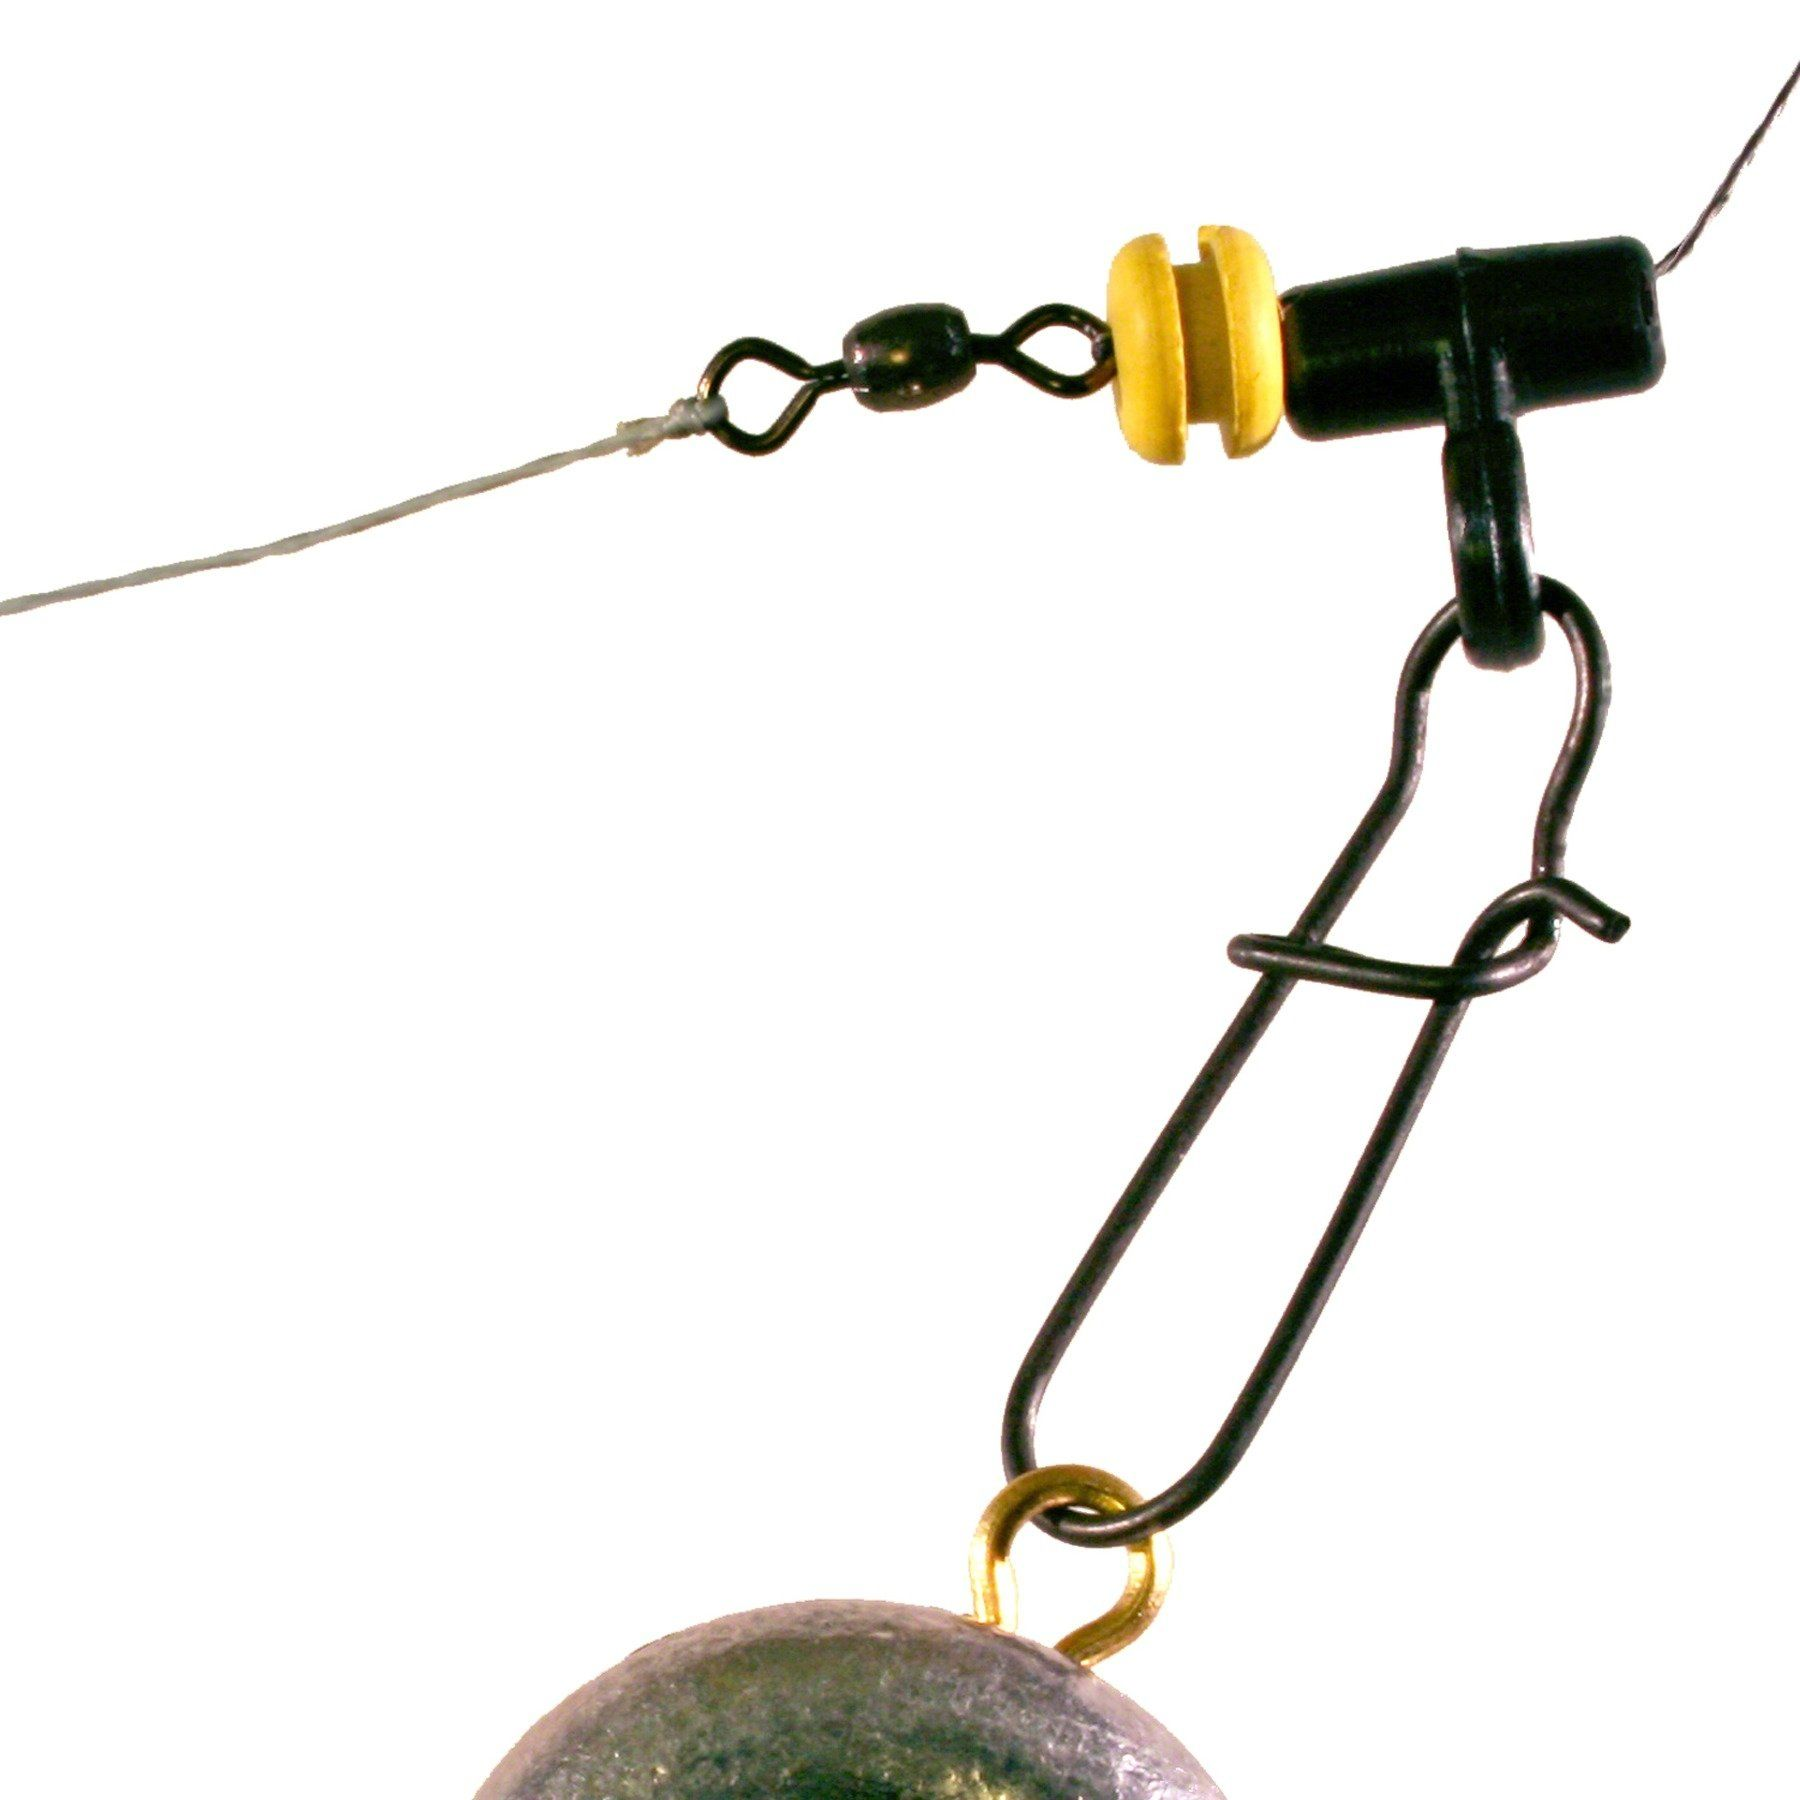 Production accessories for sport hunting, sport and recreational fishing